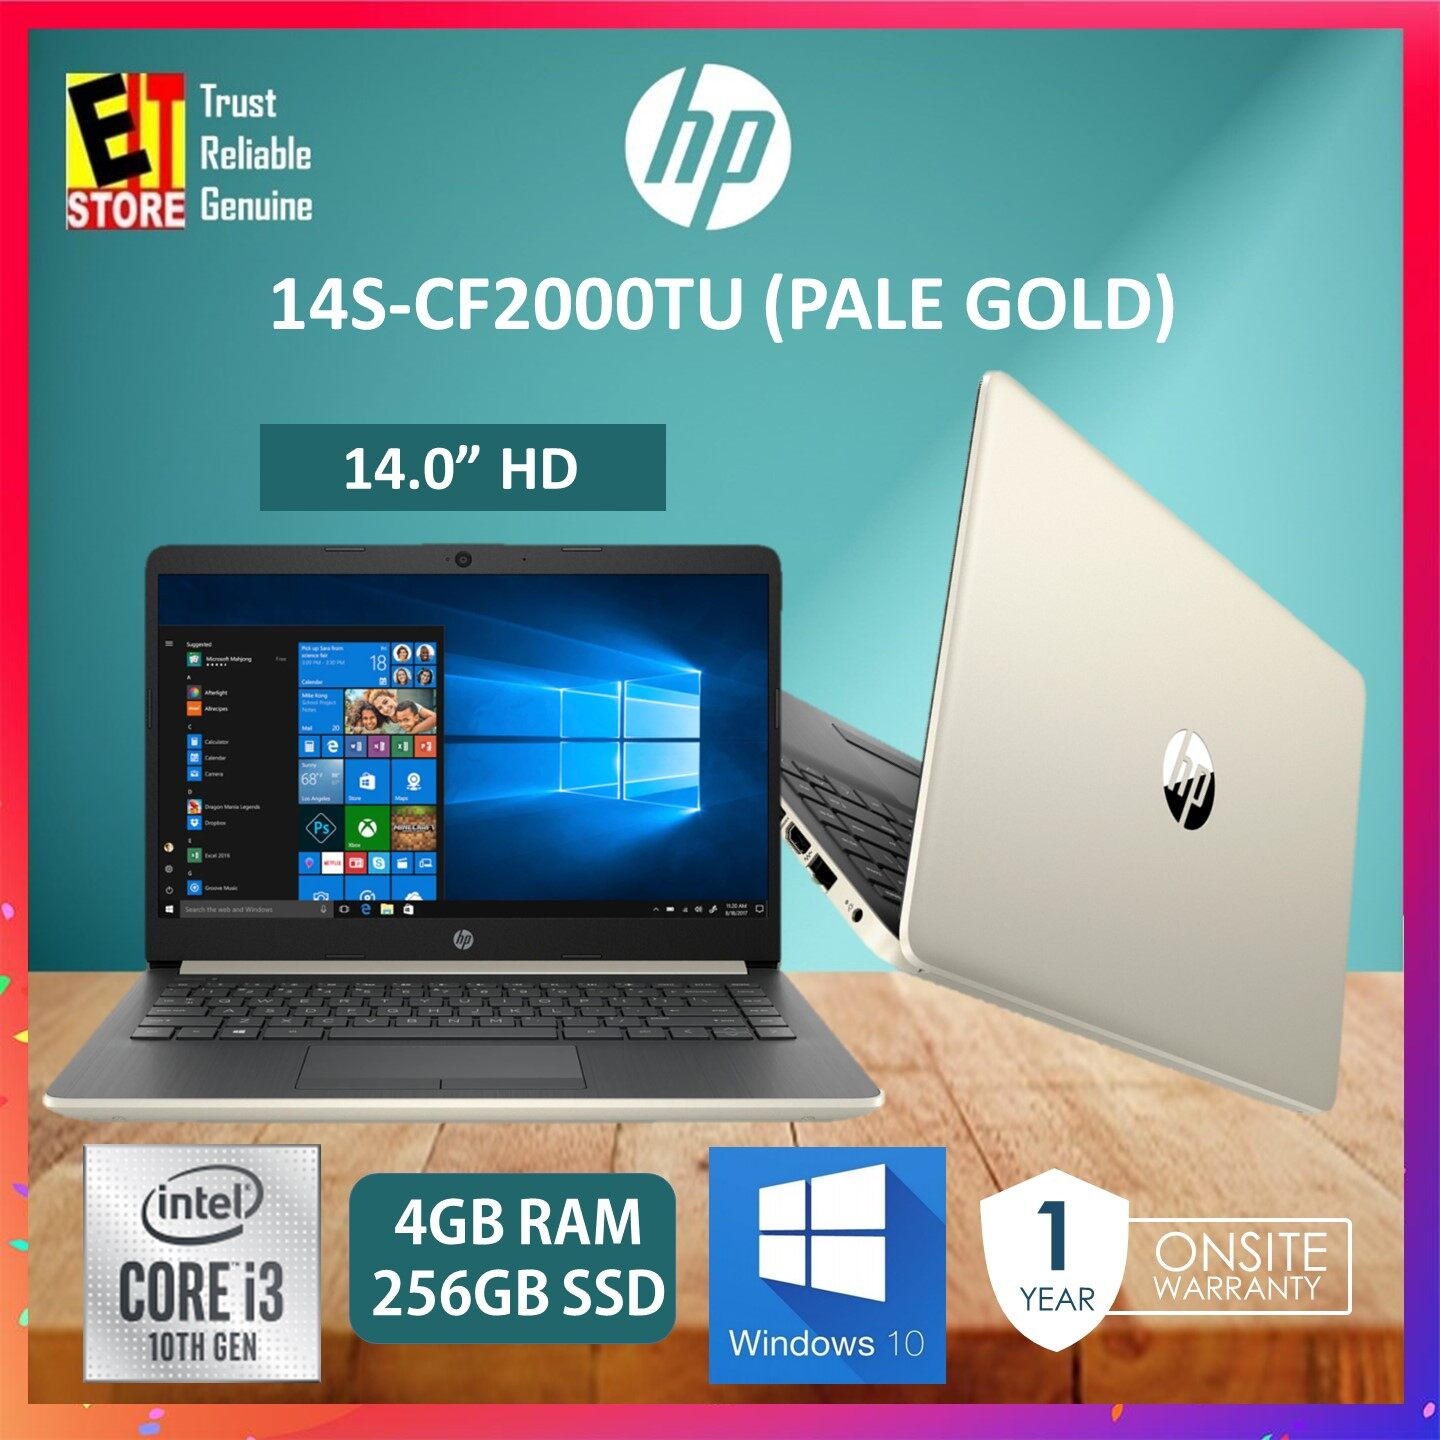 HP 14S-CF2000TU LAPTOP -PALE GOLD (i3-10110U/4GB/256GB SSD/14 HD/W10/1YR) + BACKPACK Malaysia